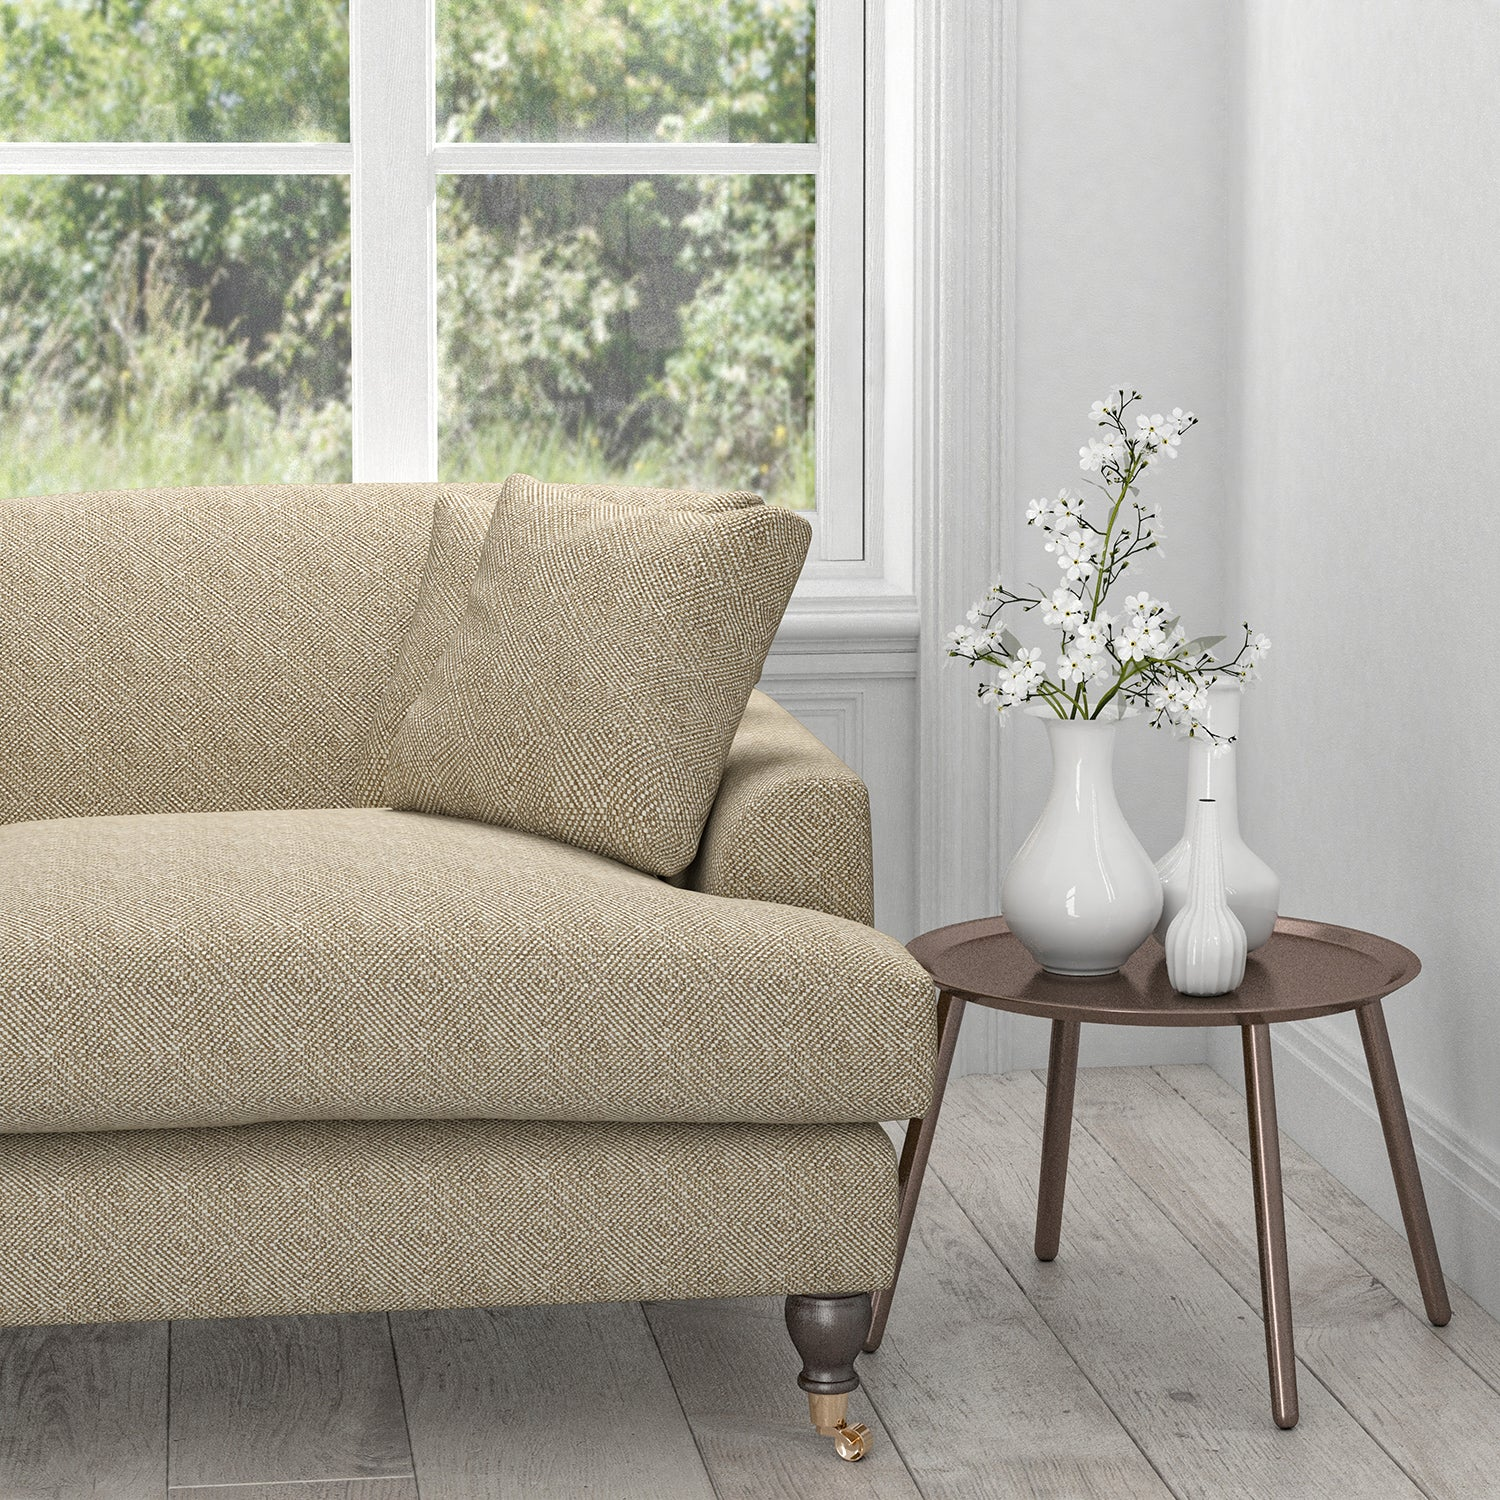 Sofa in a neutral fabric with a white geometric woven design